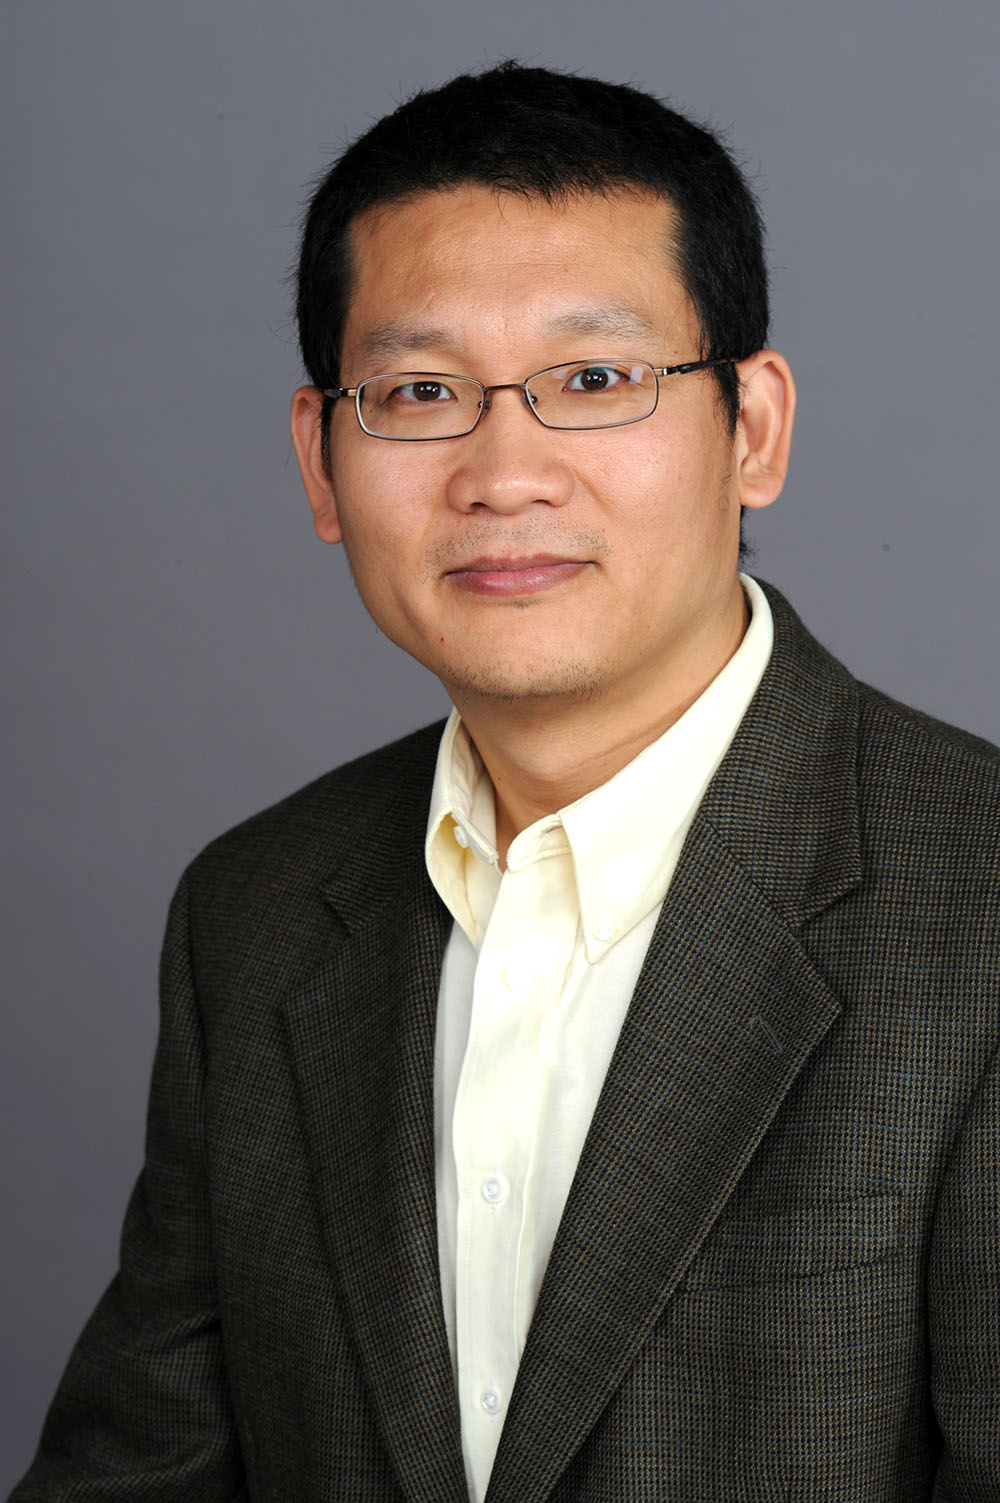 Jason Liu Portrait